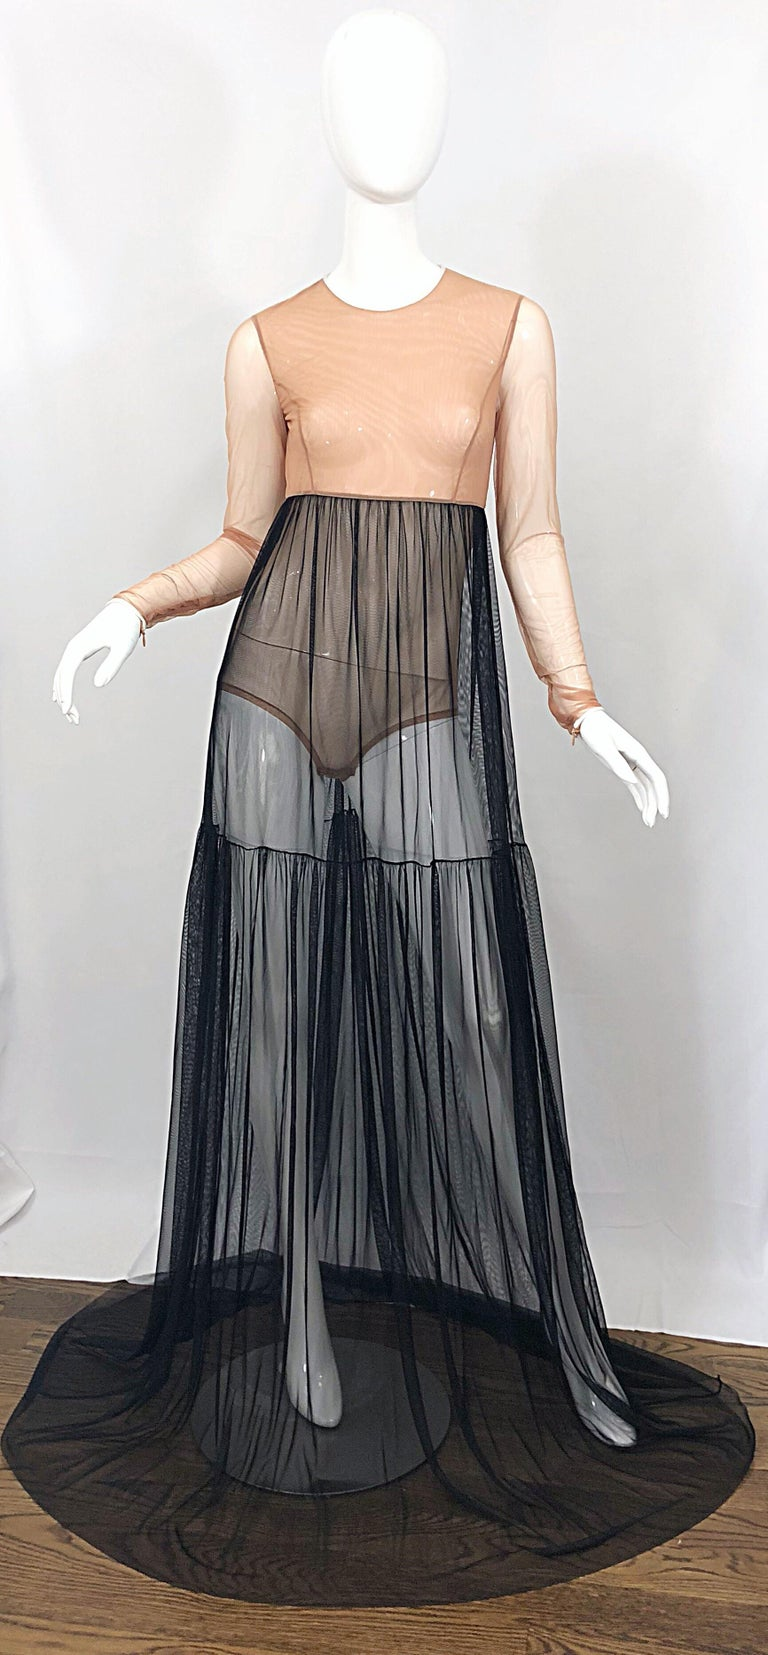 Sexy MICHAEL KORS COLLECTION nude and black sheer bodysuit gown! Features an attached nude bodysuit, with a black high waisted mesh skirt. White trim at neck and sleeves. Hidden zipper at each sleeve cuff. Extra long train adds a dramatic effect,